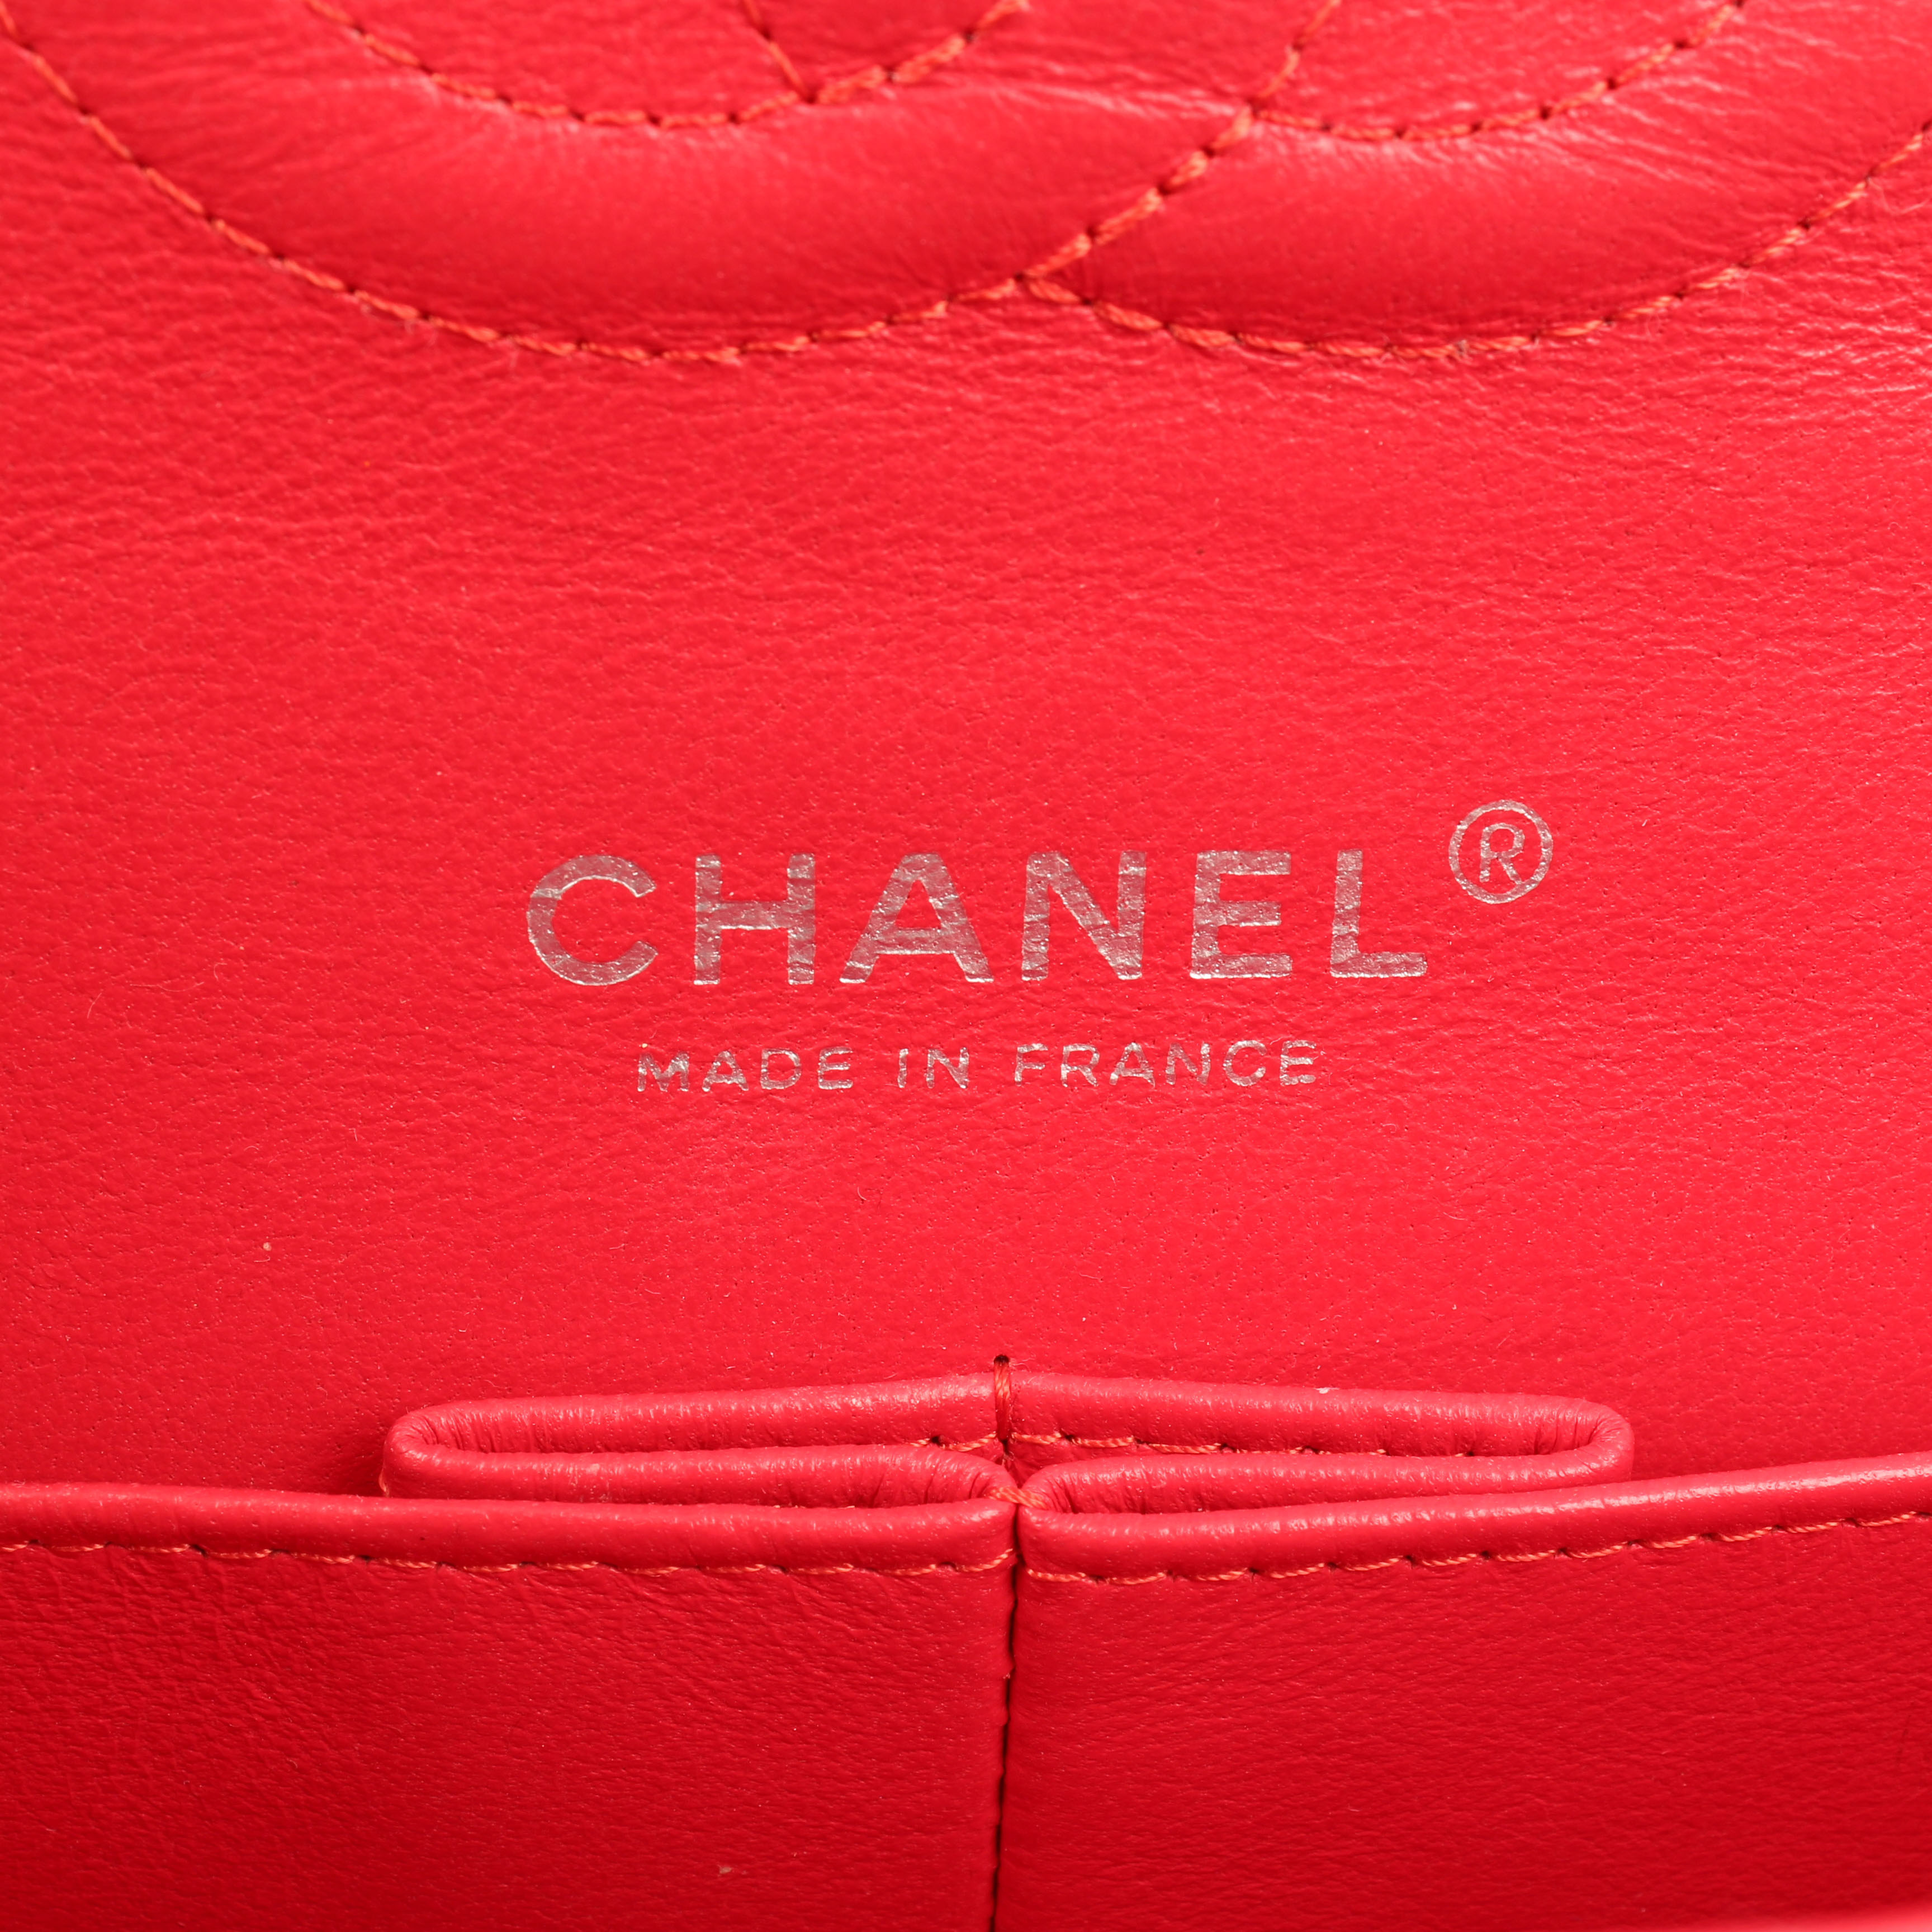 Image of brand from chanel timeless tweed pink multicolor neon double flap bag